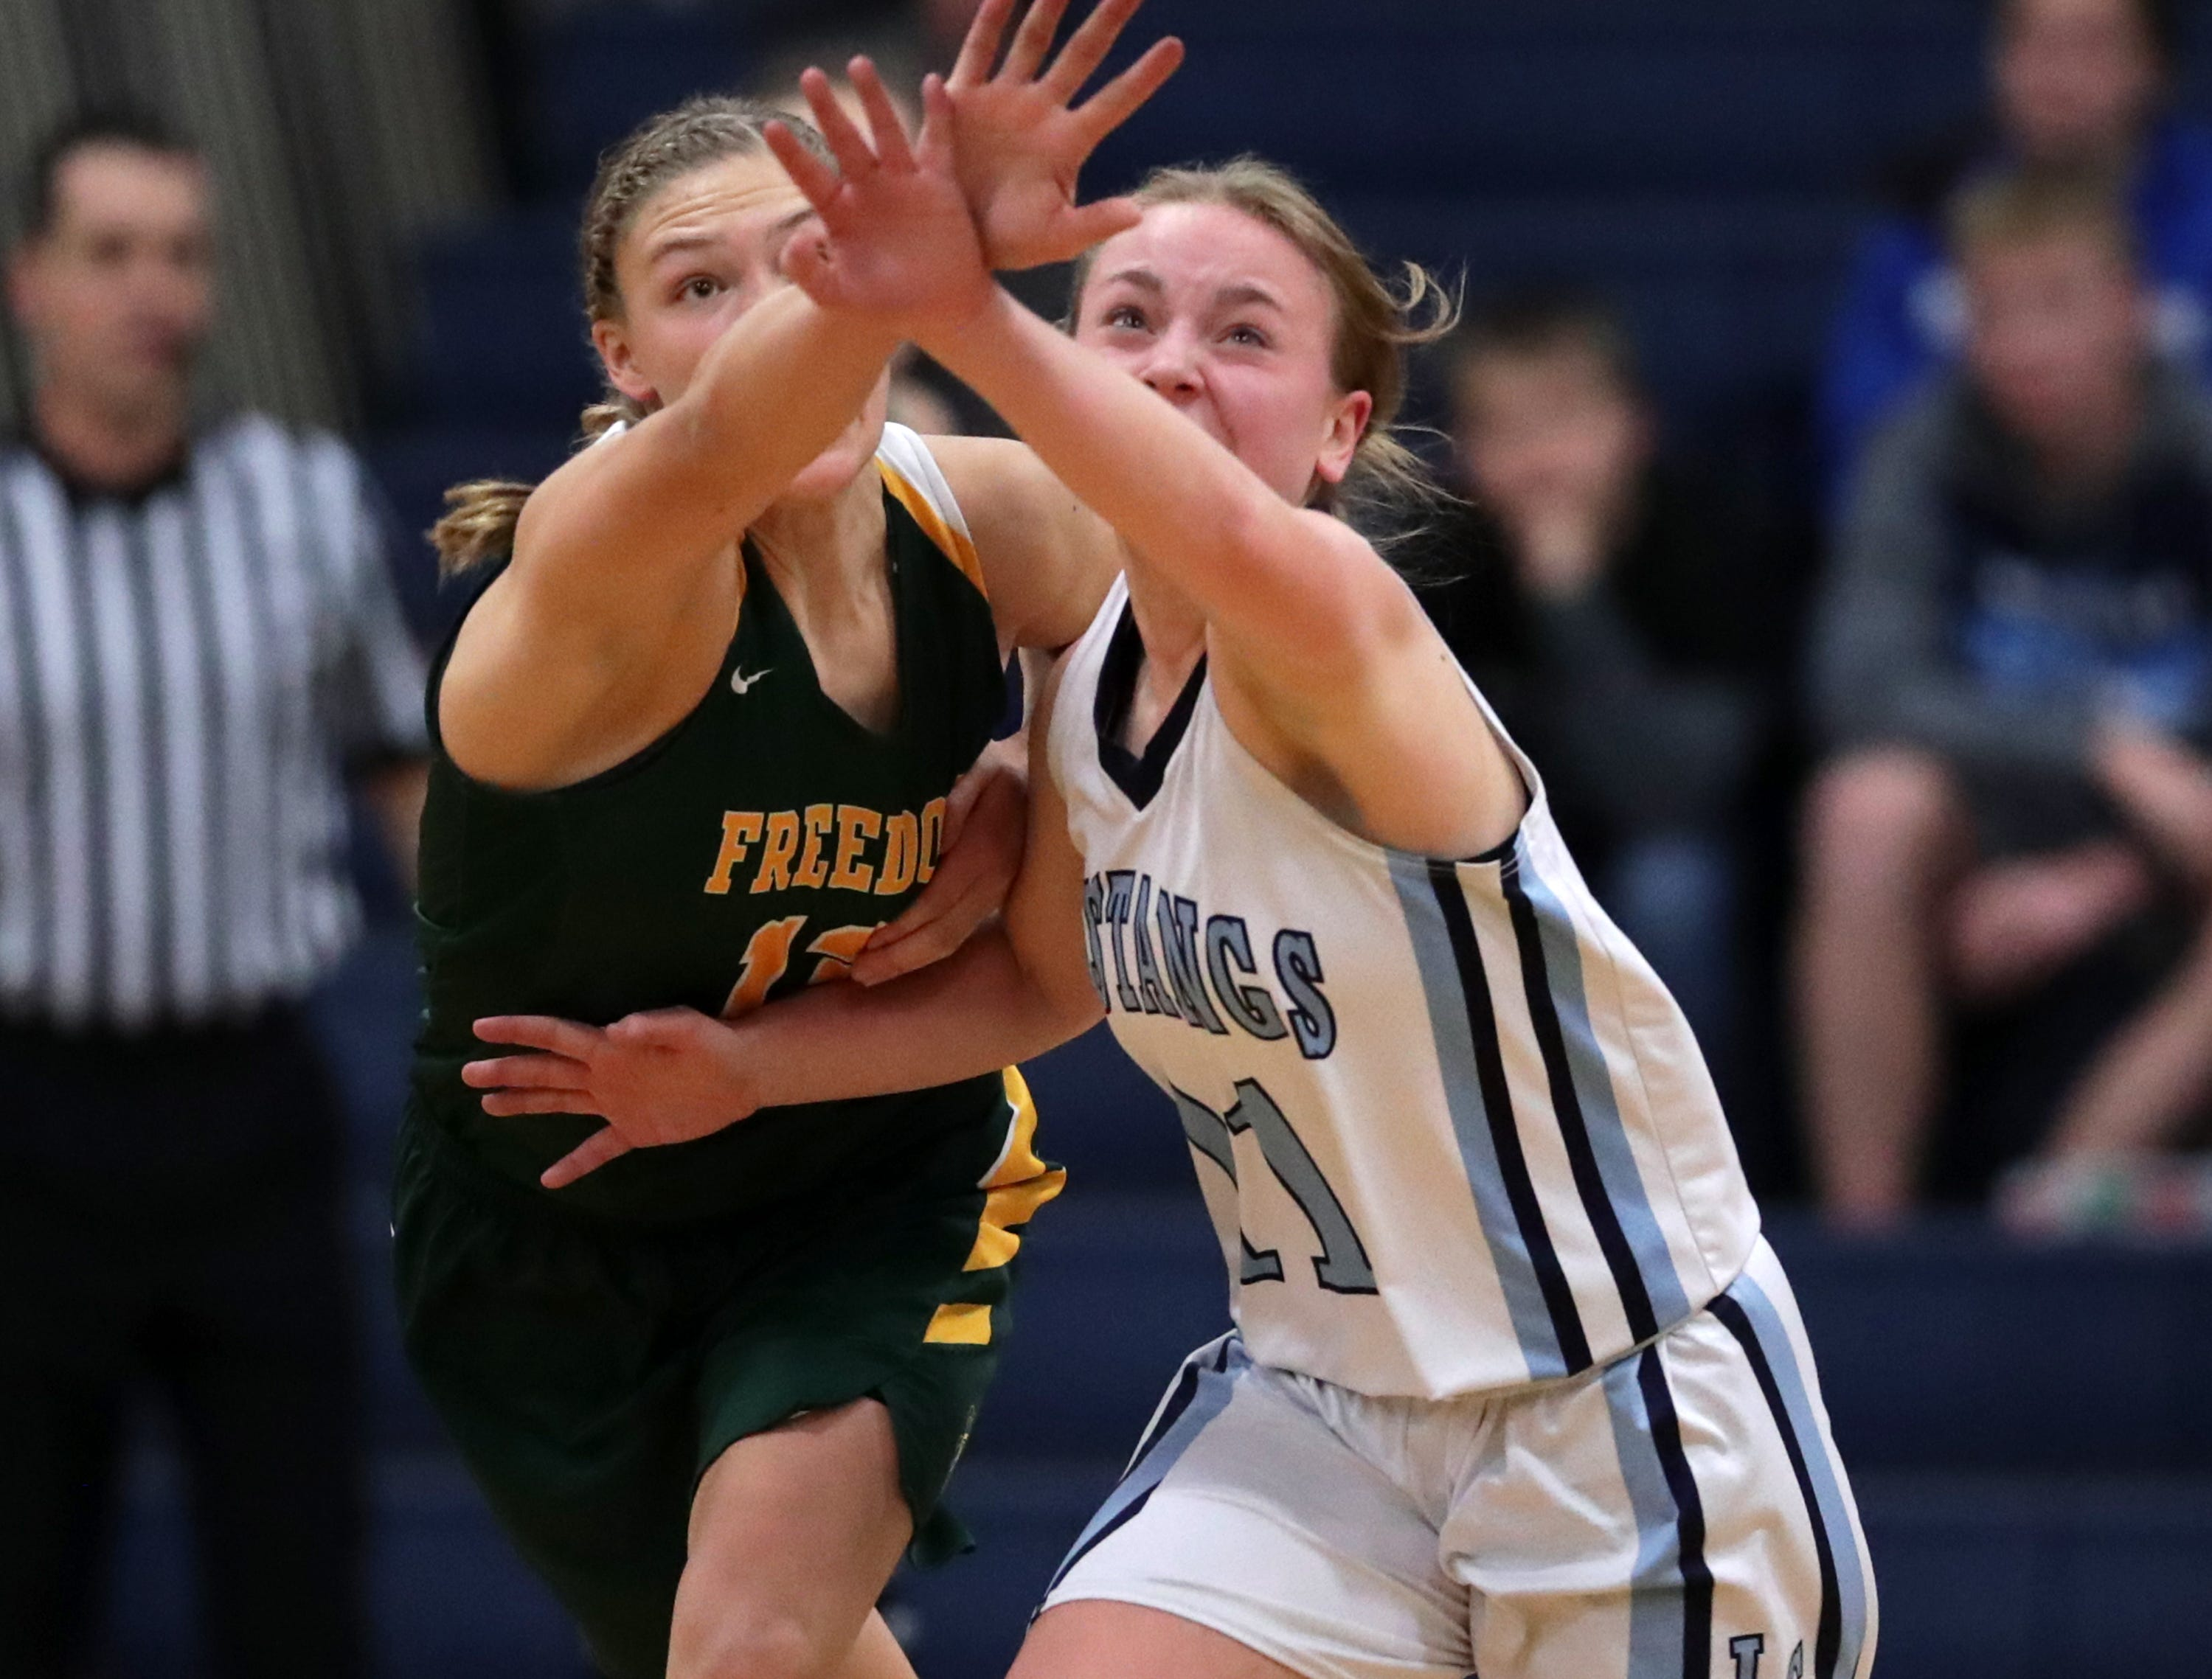 Little Chute High School's #11 Morgan Trzebiatowski  against Freedom High School's #14 Karissa Wurster during their North Eastern Conference girls basketball game on Friday, December 21, 2018, in Little Chute, Wis. Freedom beat Little Chute 56 to 42.Wm. Glasheen/USA TODAY NETWORK-Wisconsin.